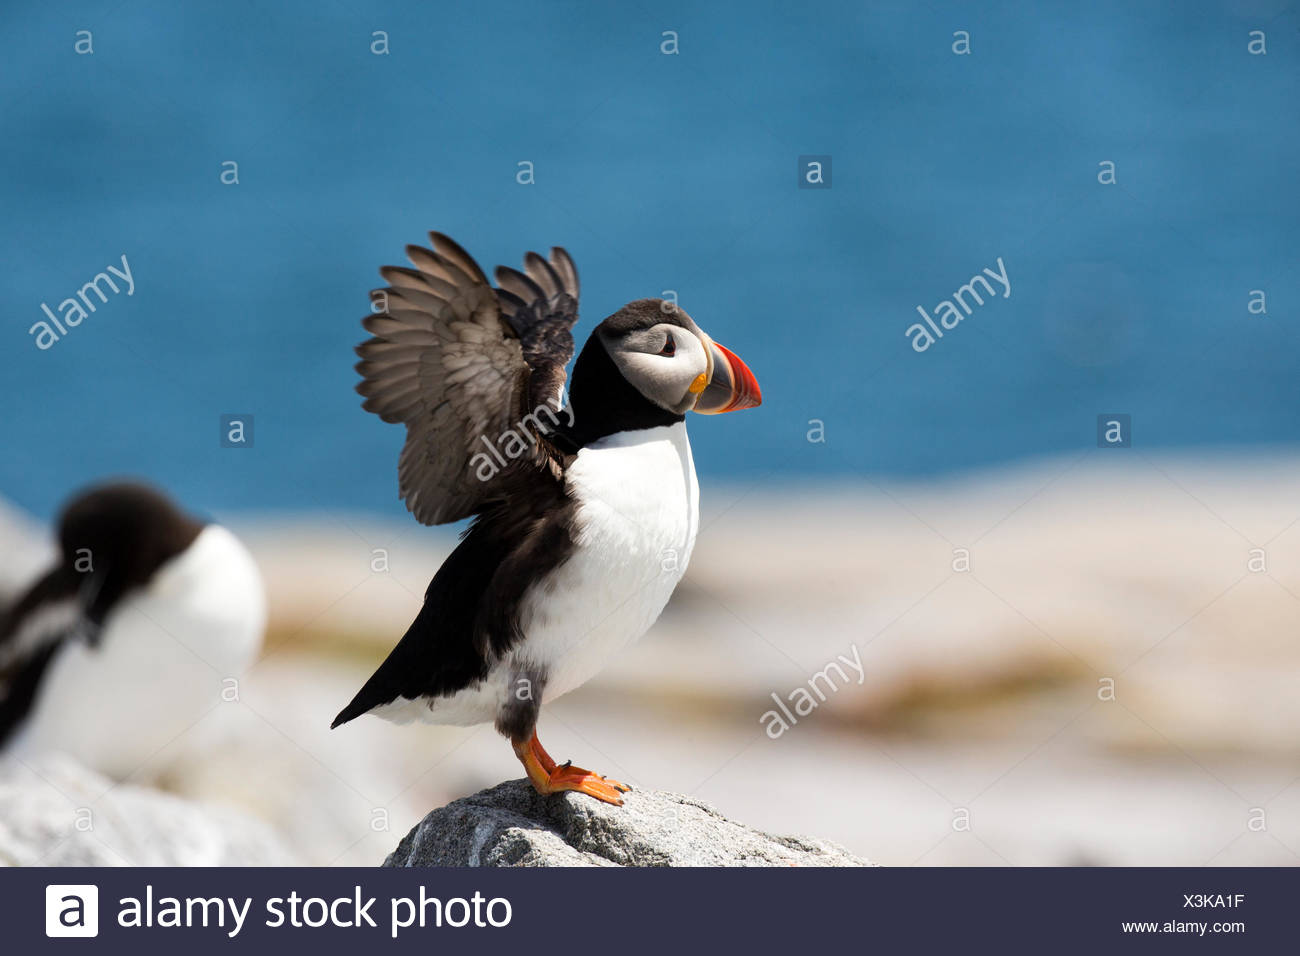 An Atlantic puffin,Fratercula arctica,spreads its wings. - Stock Image